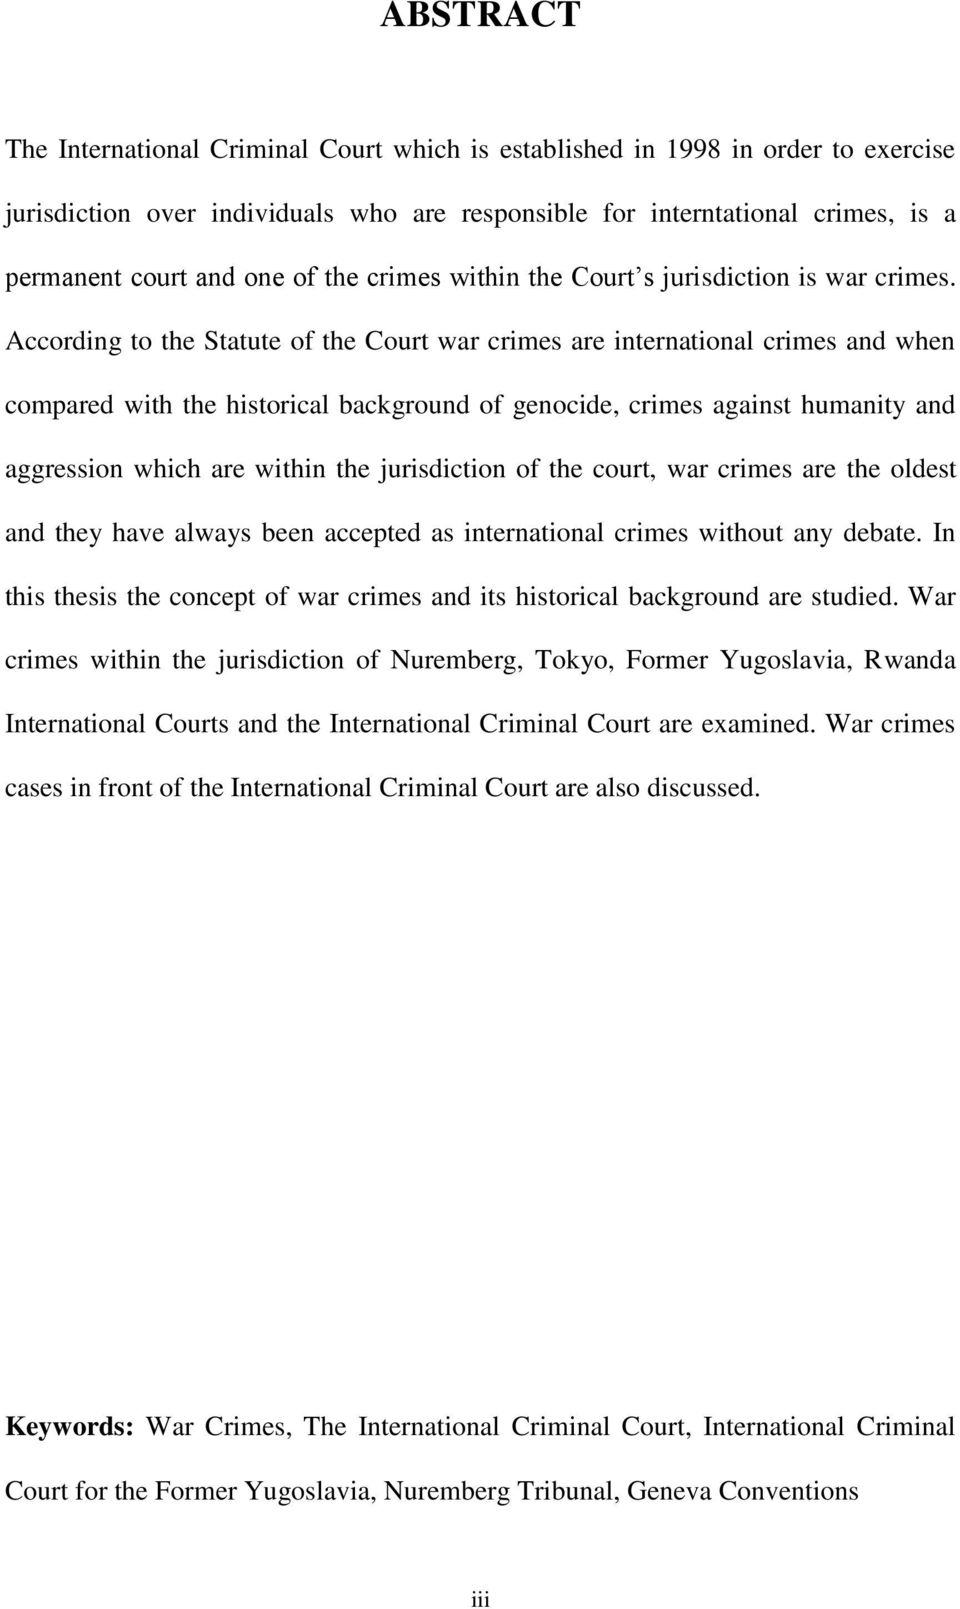 According to the Statute of the Court war crimes are international crimes and when compared with the historical background of genocide, crimes against humanity and aggression which are within the